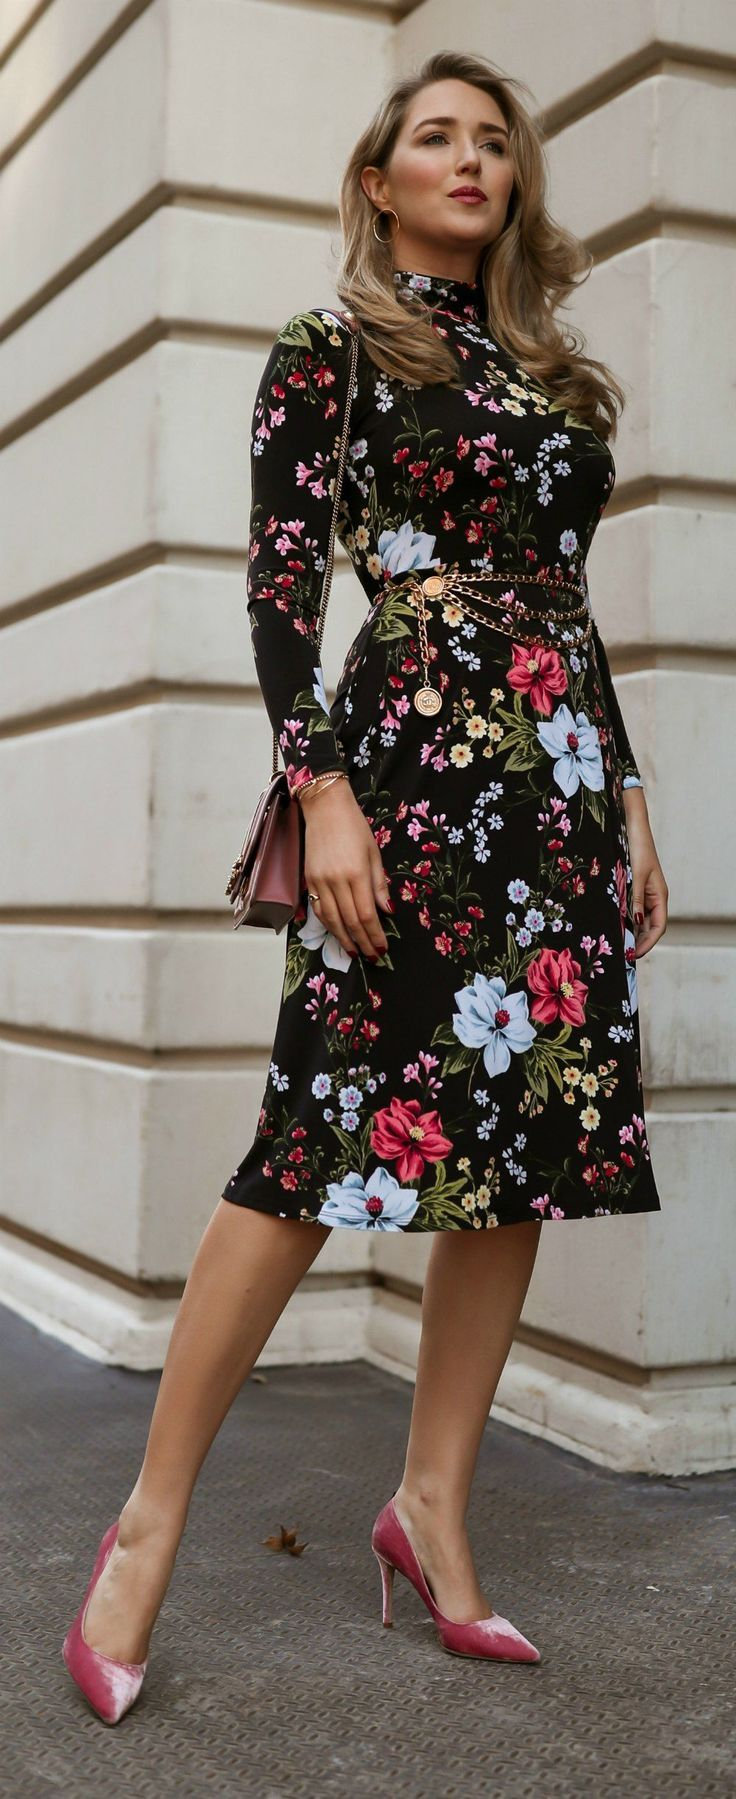 I Know Other Seasons Love To Stake Their Claim On Florals But I Ll Wear All The Blooms I Want Floral Dress Design Floral Dress Black Dresses [ 1799 x 736 Pixel ]